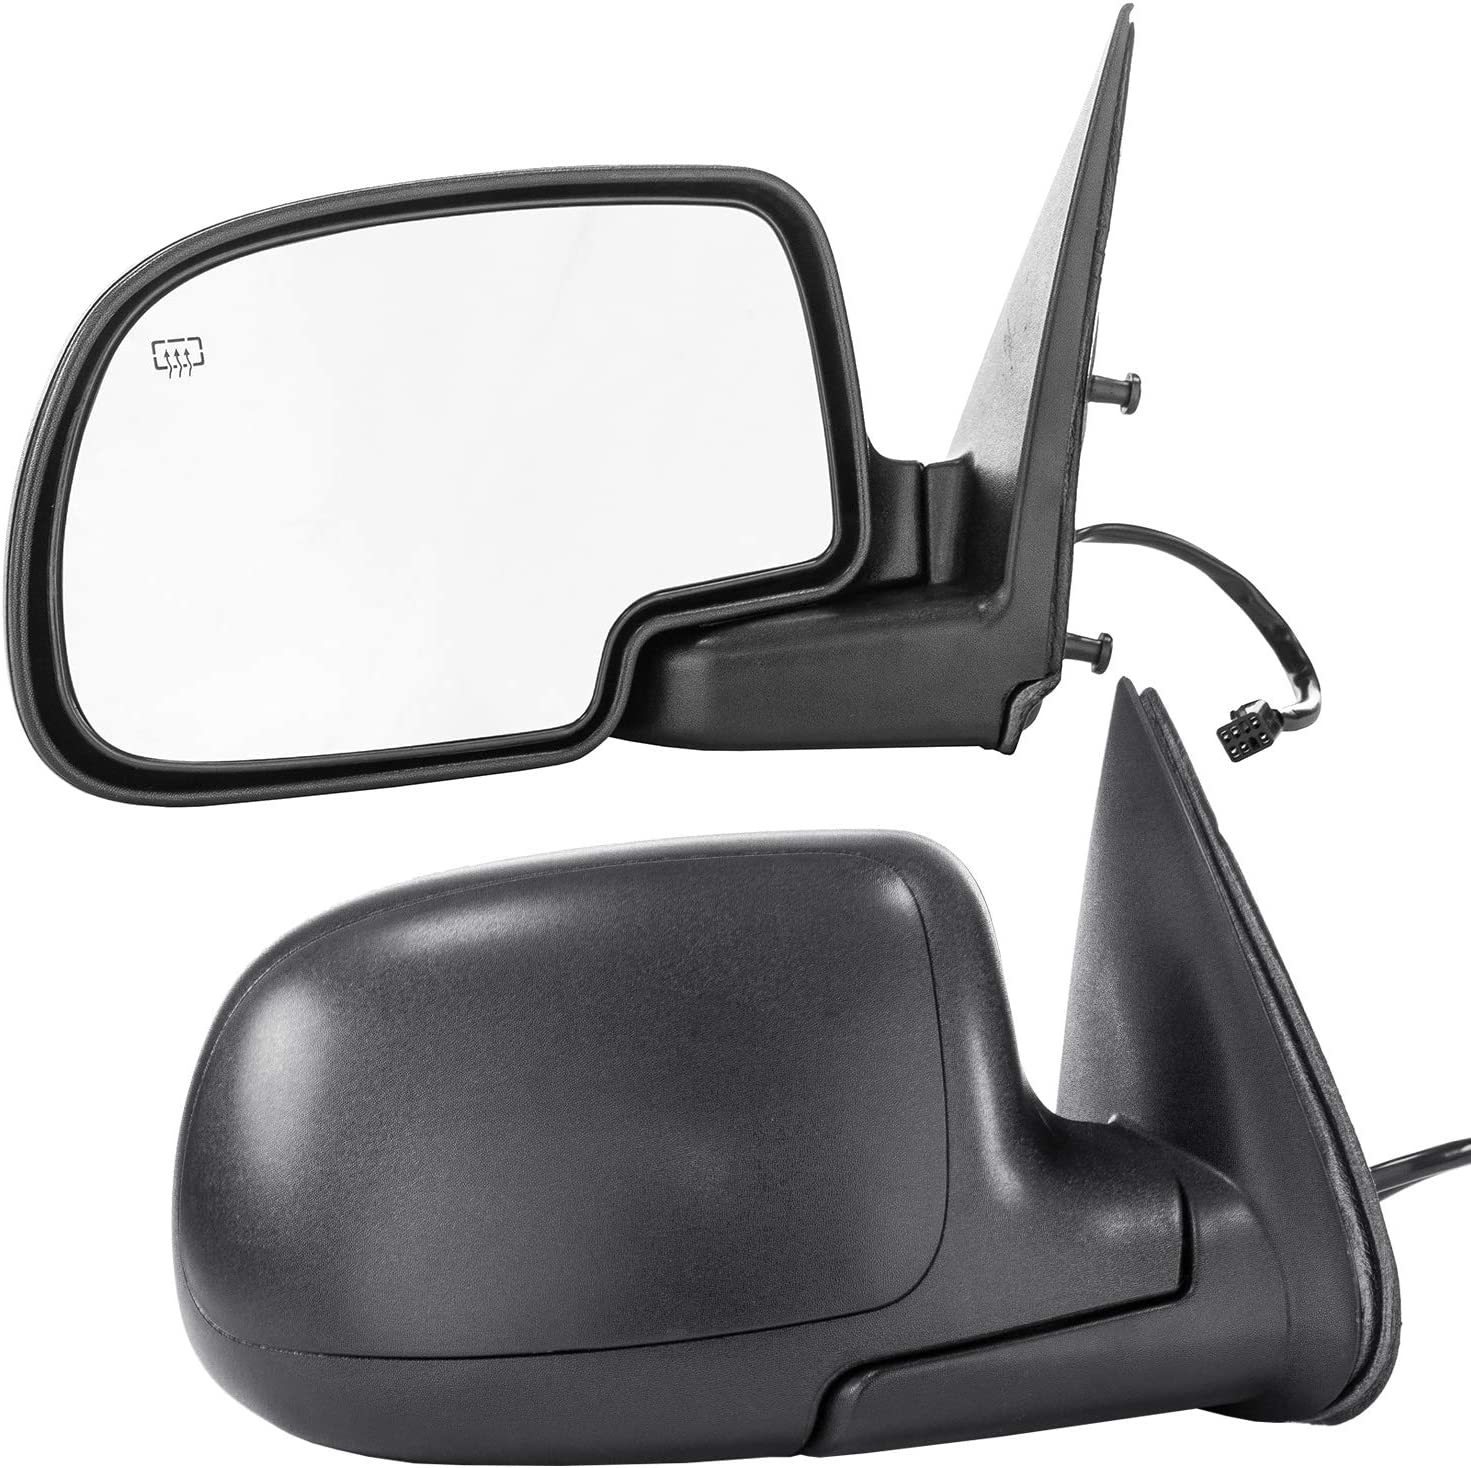 GM1320332 Parts Link # Dependable Direct Left Side Textured Manual Folding Mirror for 07-13 Chevy Silverado 2008-2014 GMC Sierra